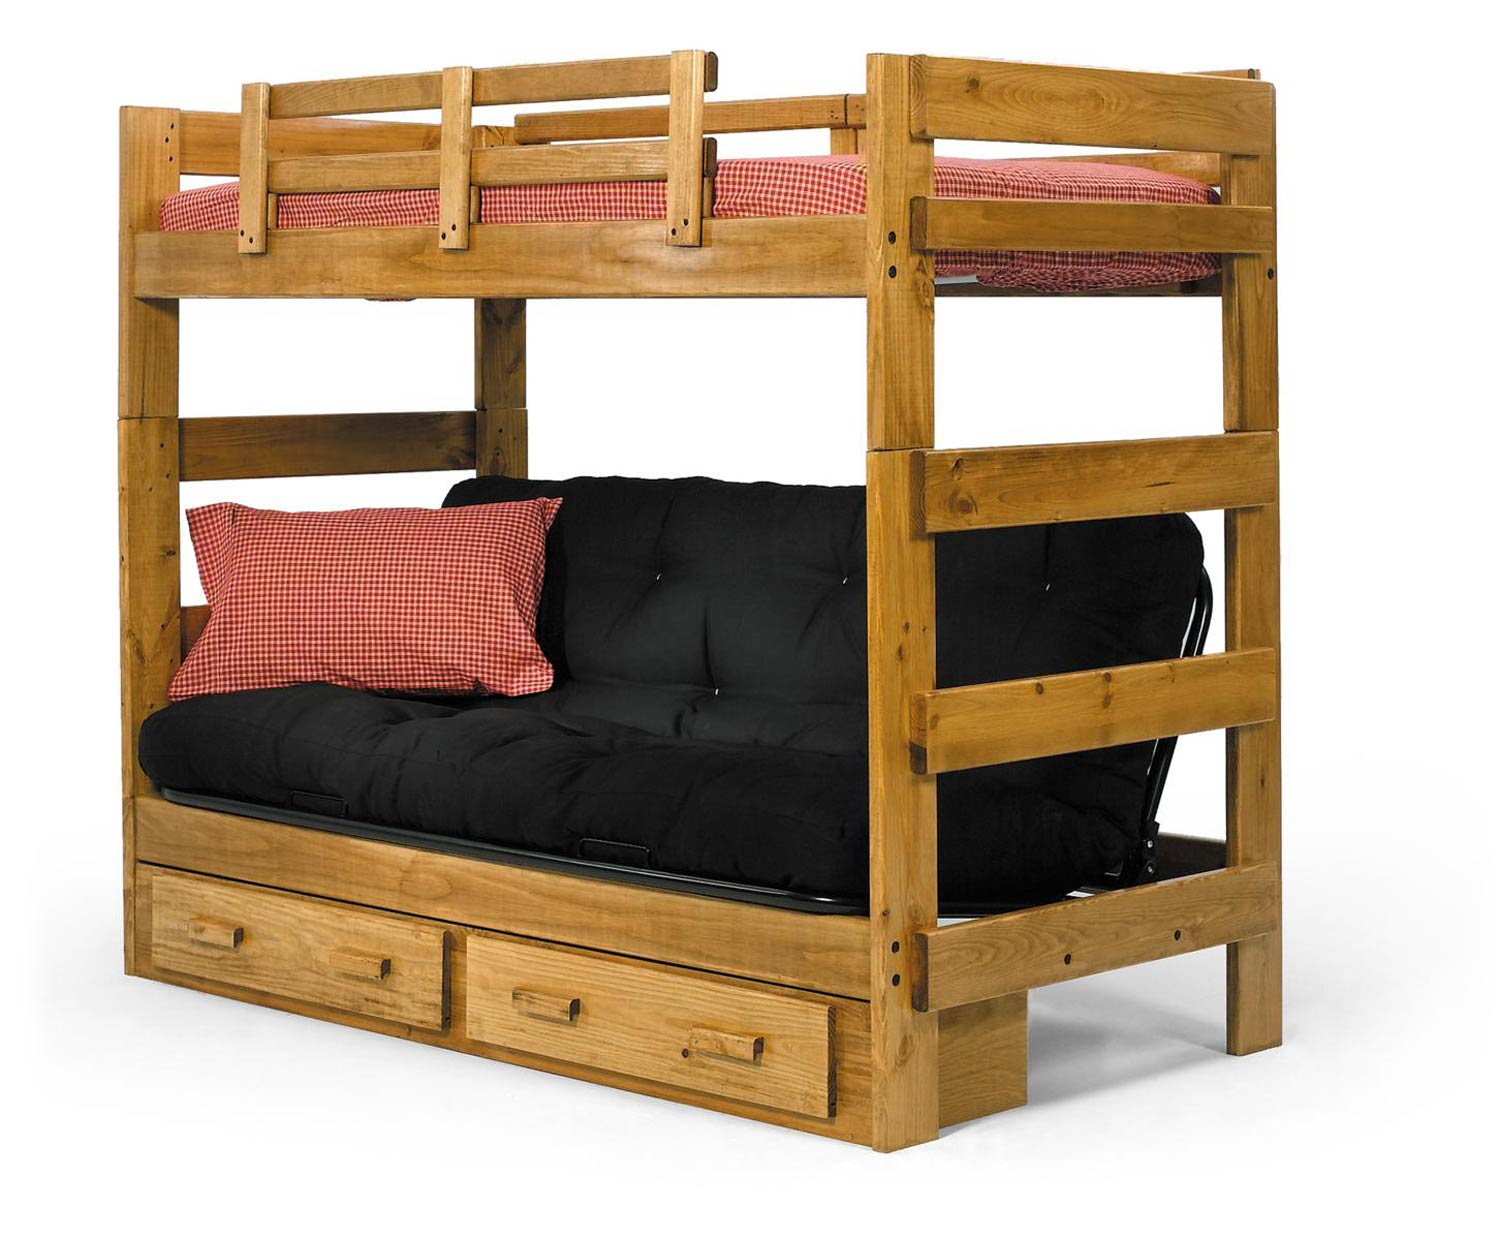 Chelsea Home 366200-S Twin Over Futon Bunk Bed with Underbed Storage - Honey